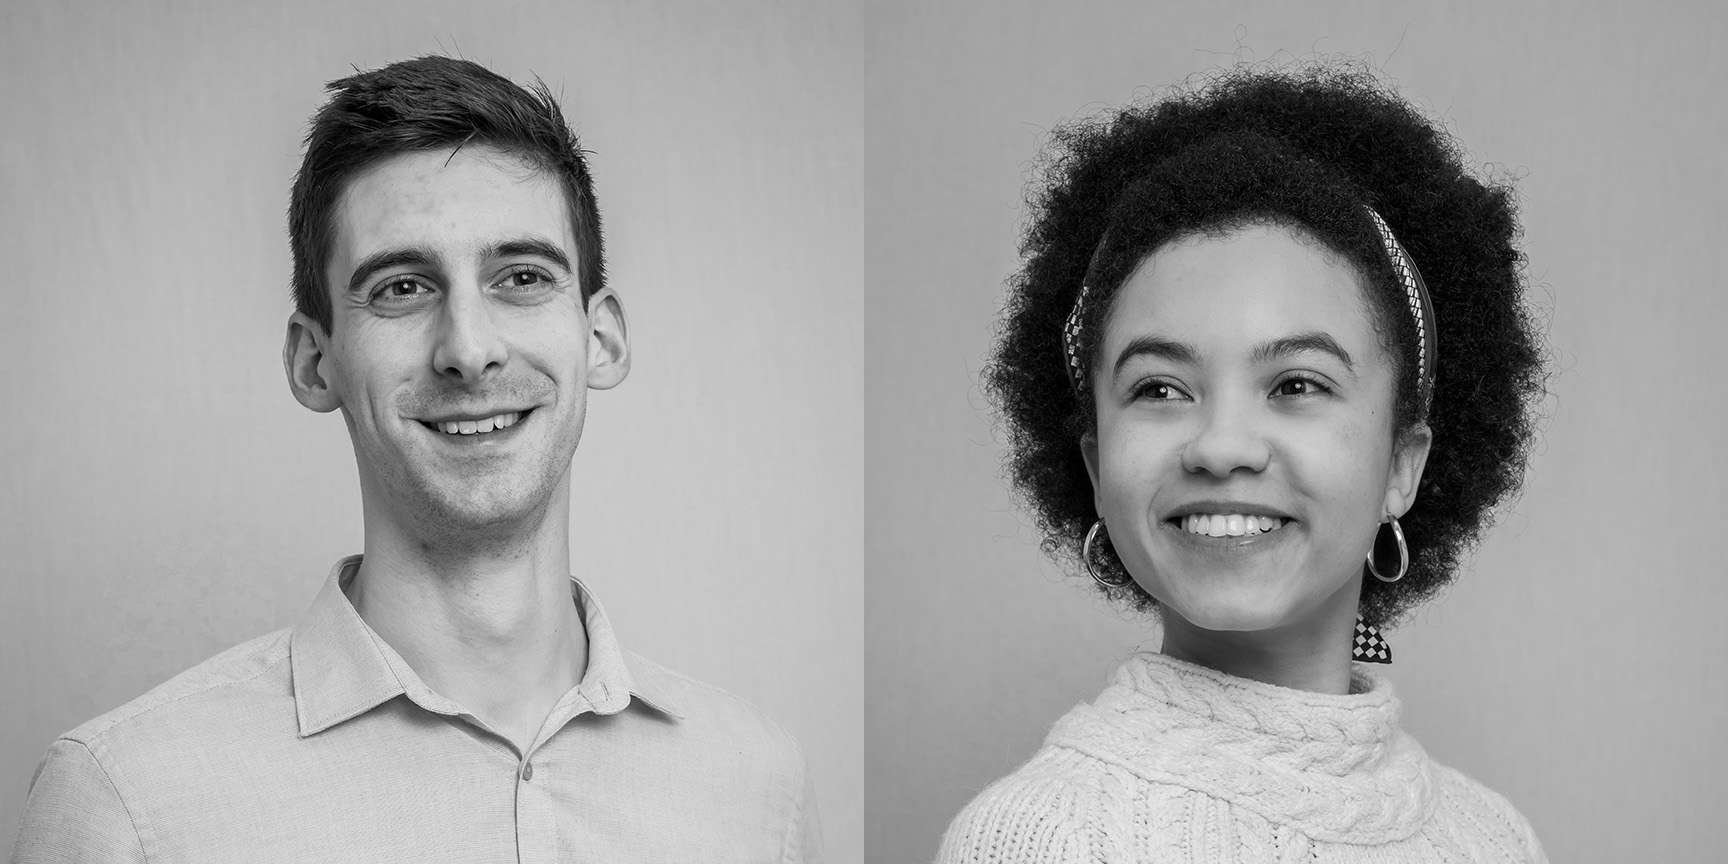 headshots of young staff members